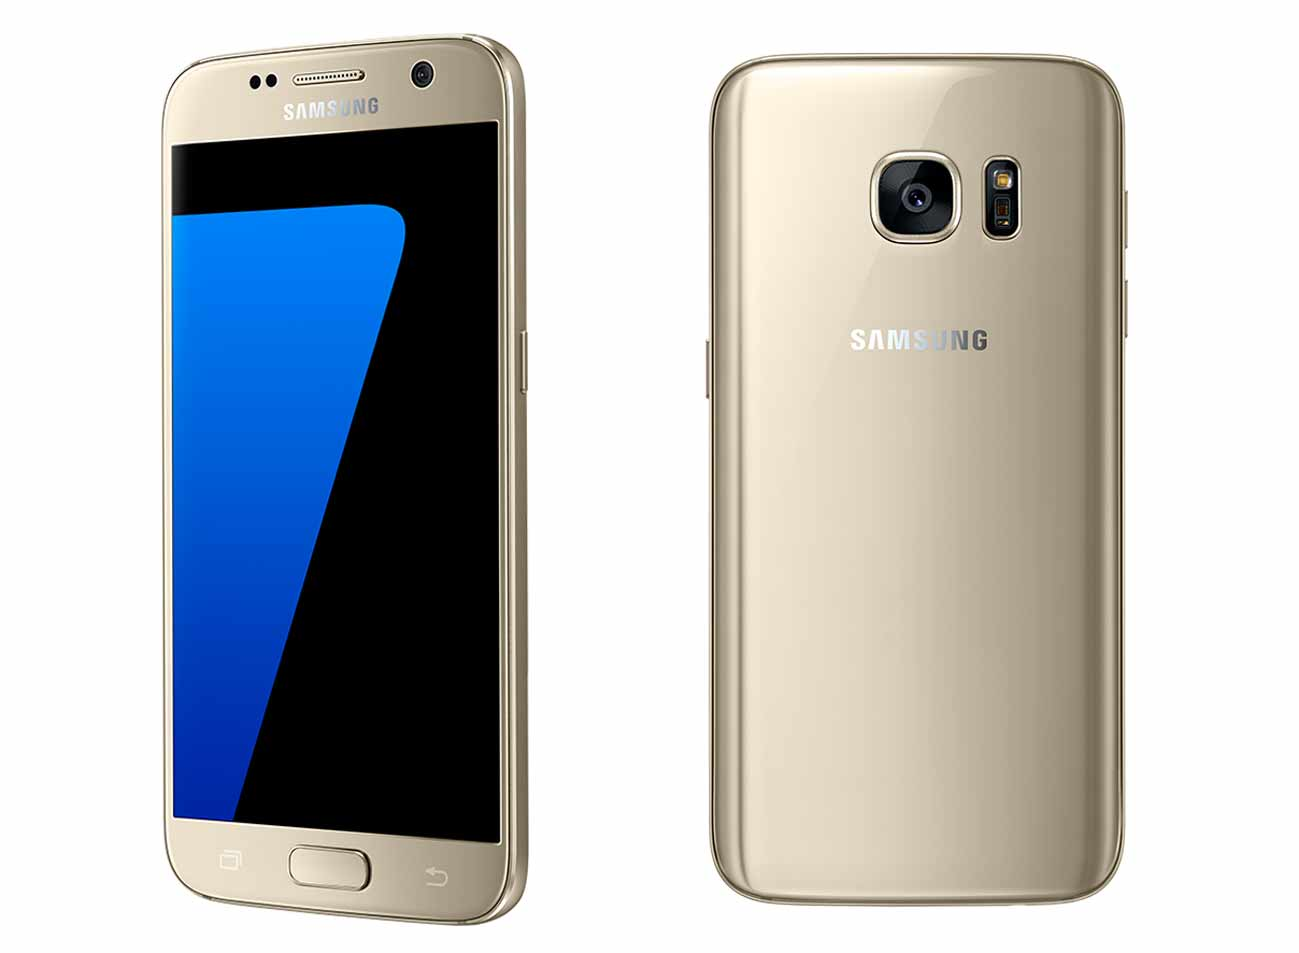 Update Galaxy S7 (SM-G9300) G9300ZCU2APK2 Android 6 0 1 | Galaxy Rom